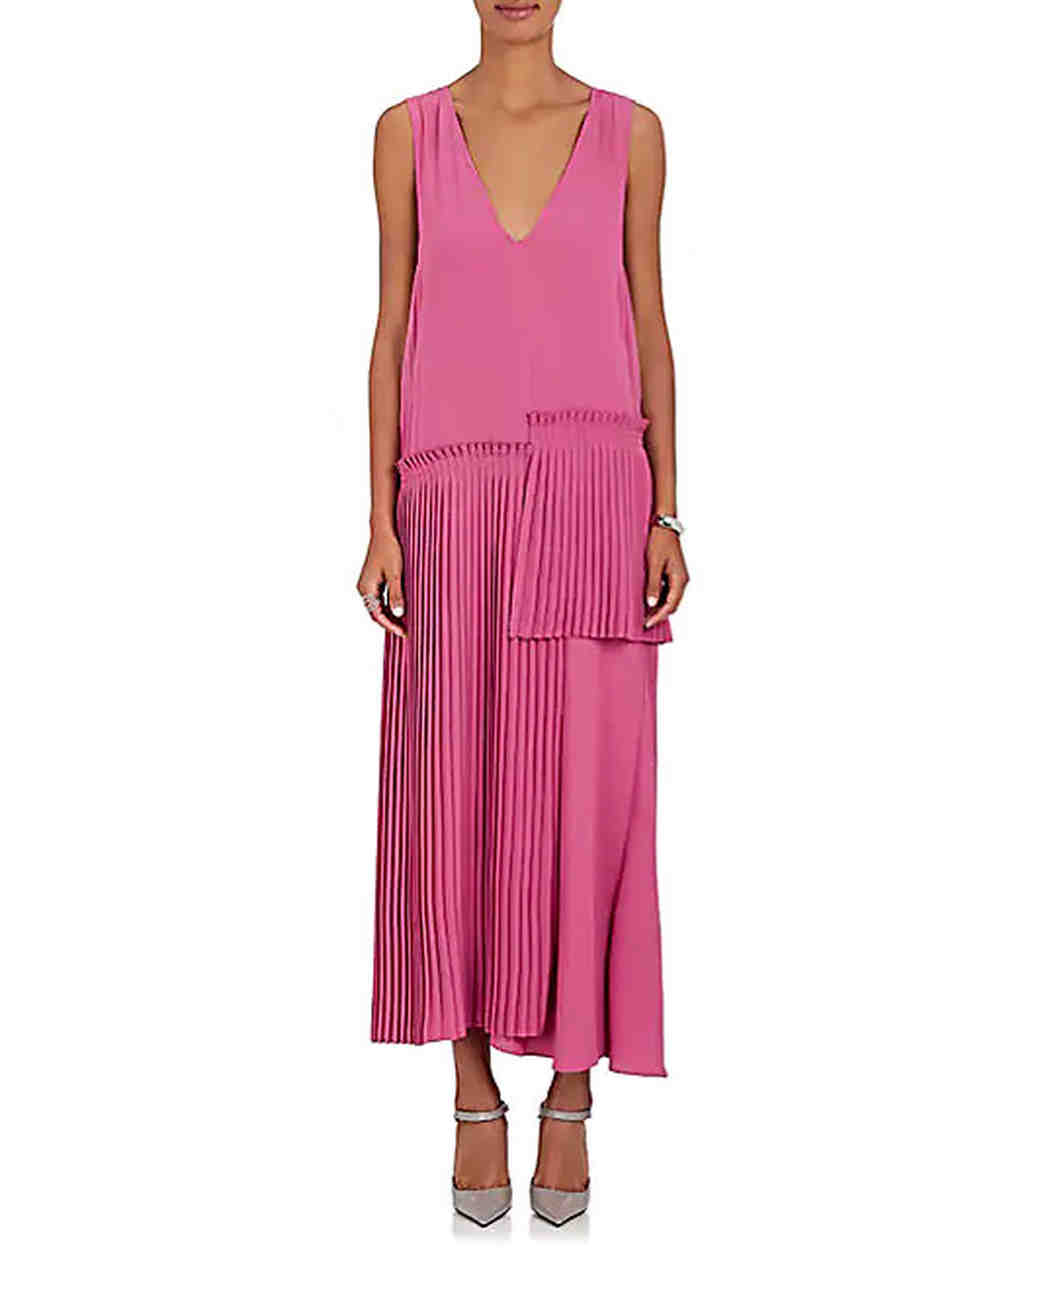 MM6 Maison Margiela crepe maxi dress